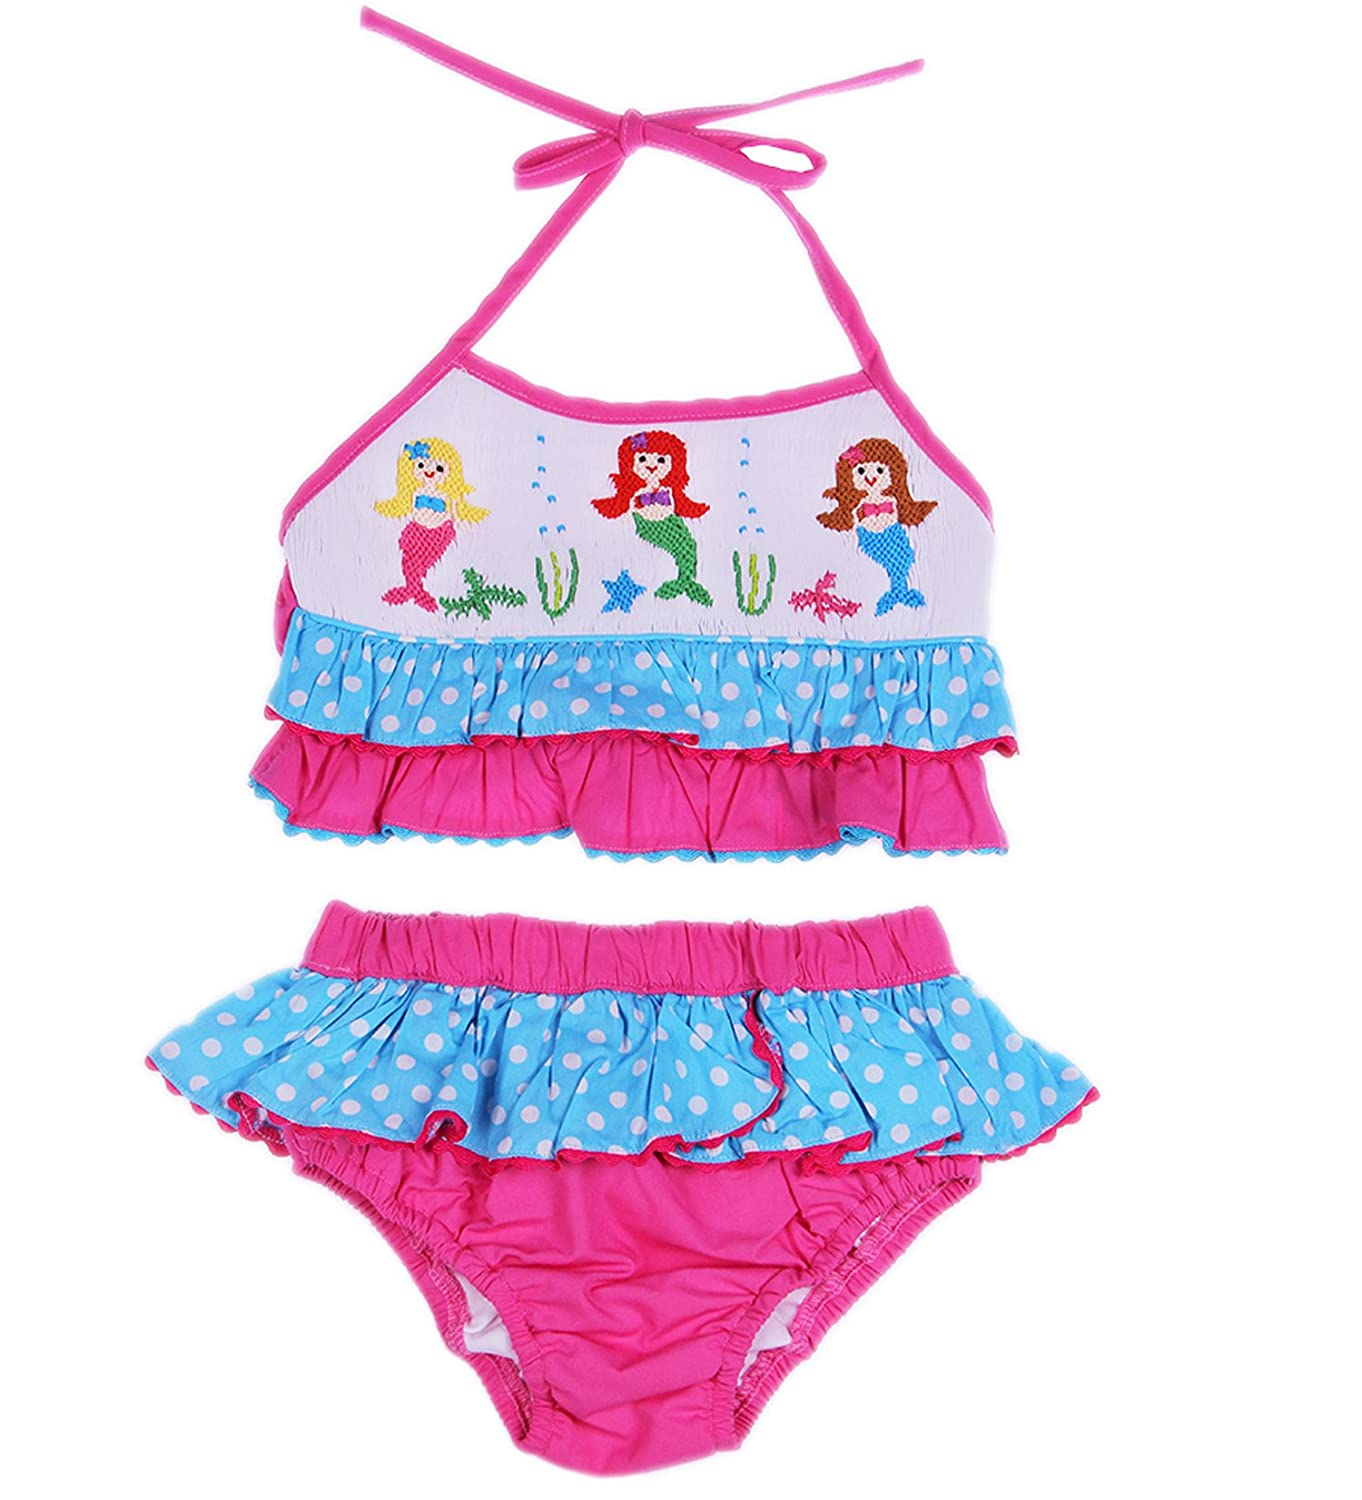 e43fb665297 Babeeni Boutique Little Girls Toddler Smocked Mermaid 2 Pc Cotton Swimsuit